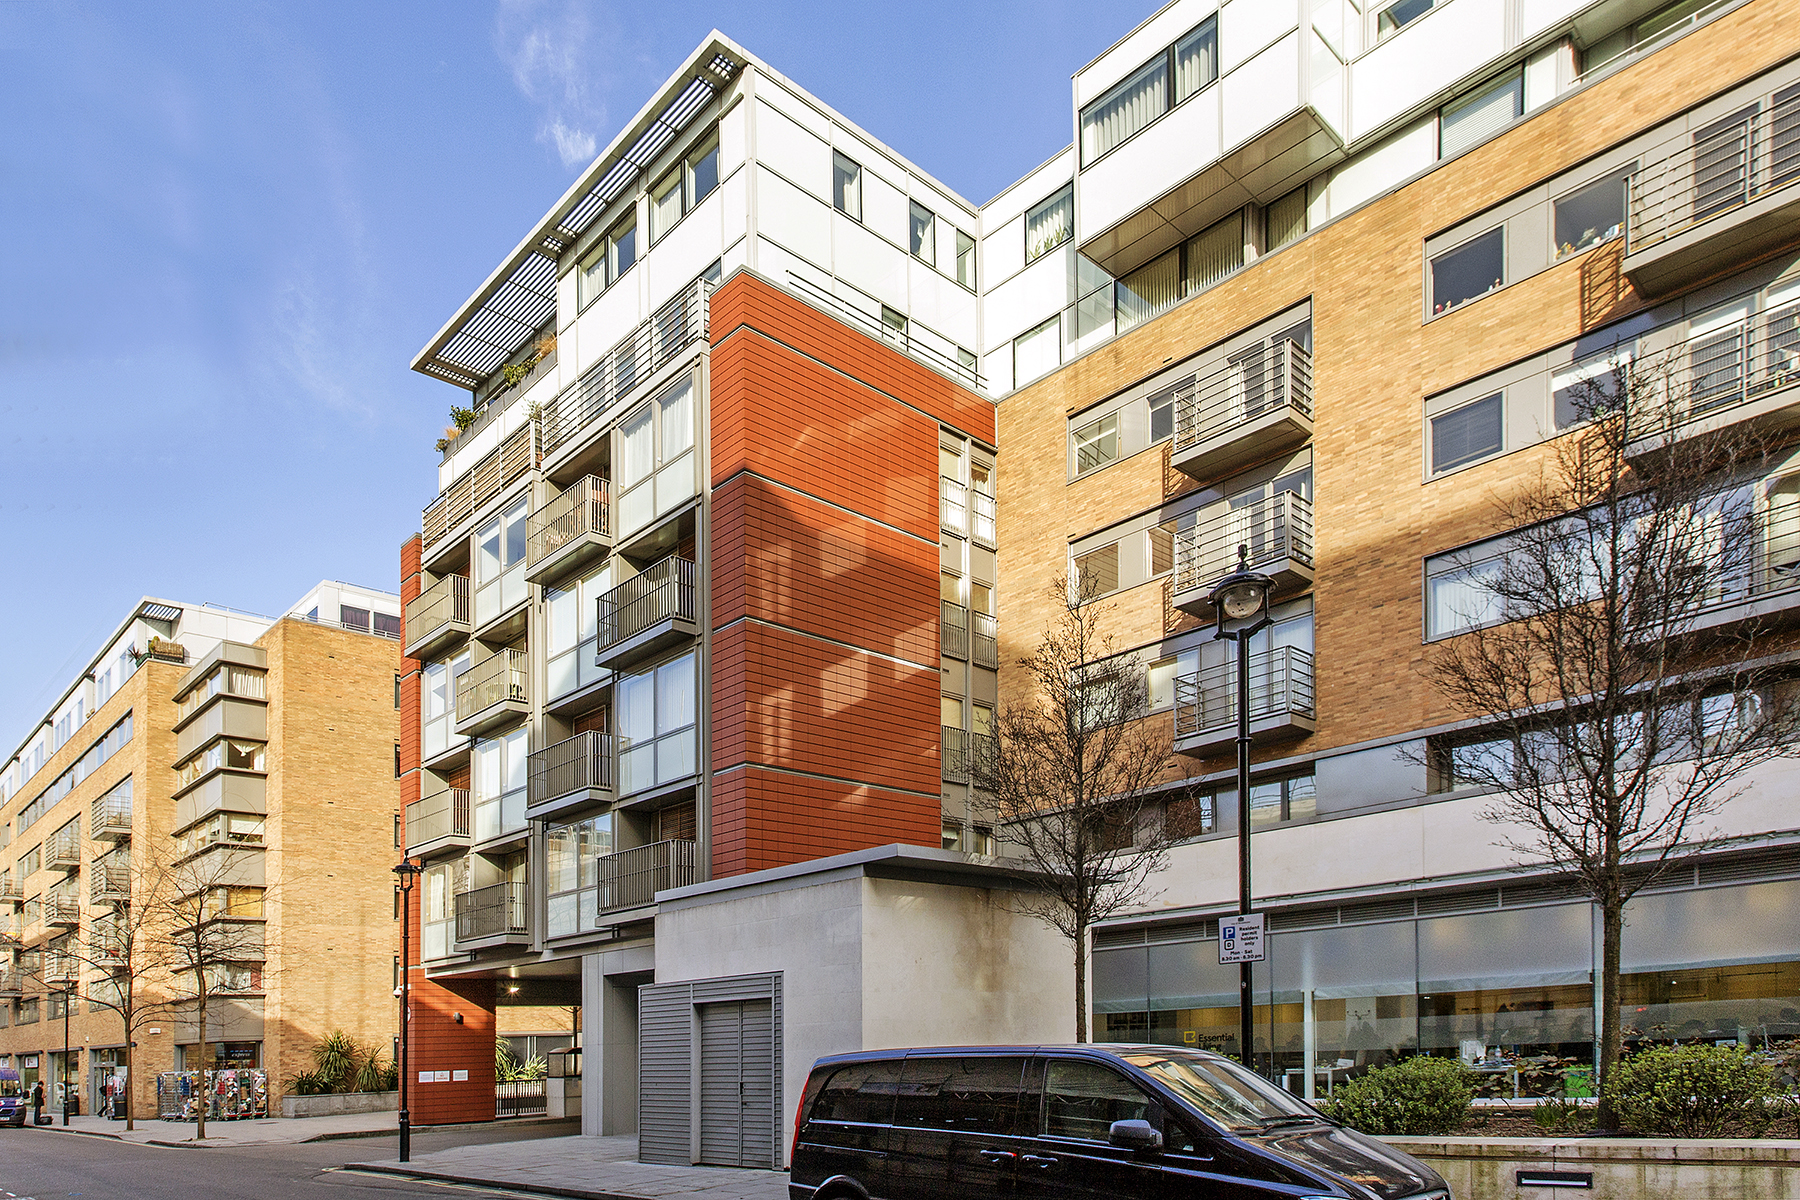 New Palace Place development in Victoria, London | 1-3 beds